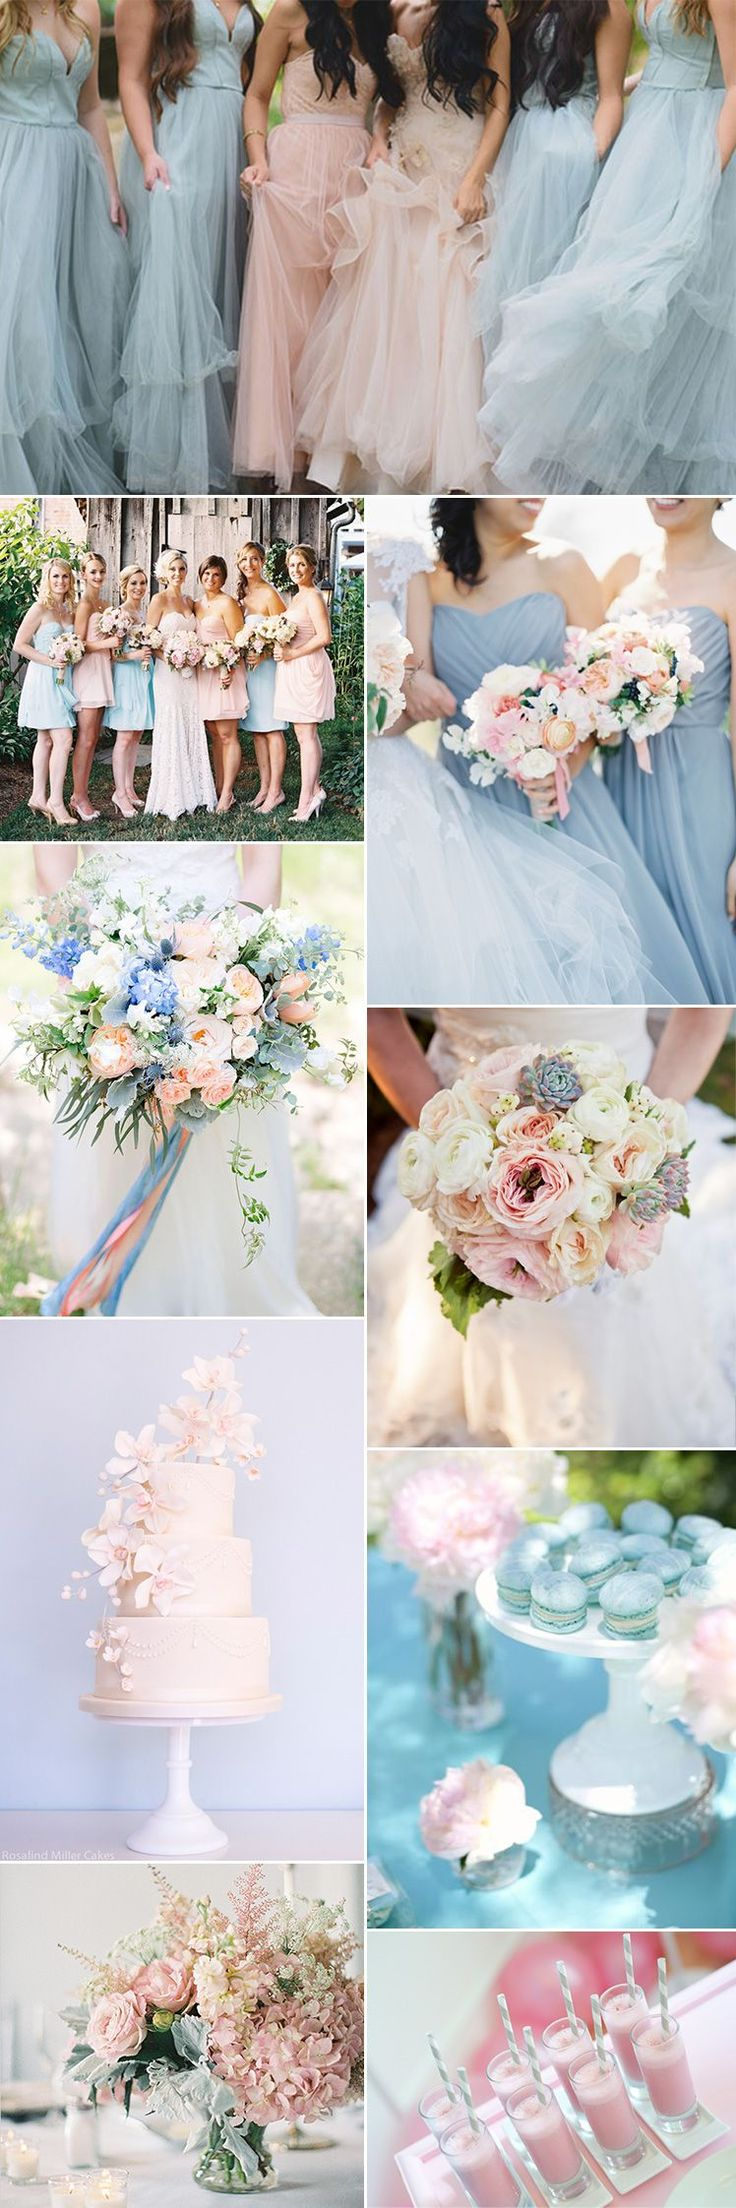 best wedding images on pinterest table centers floral